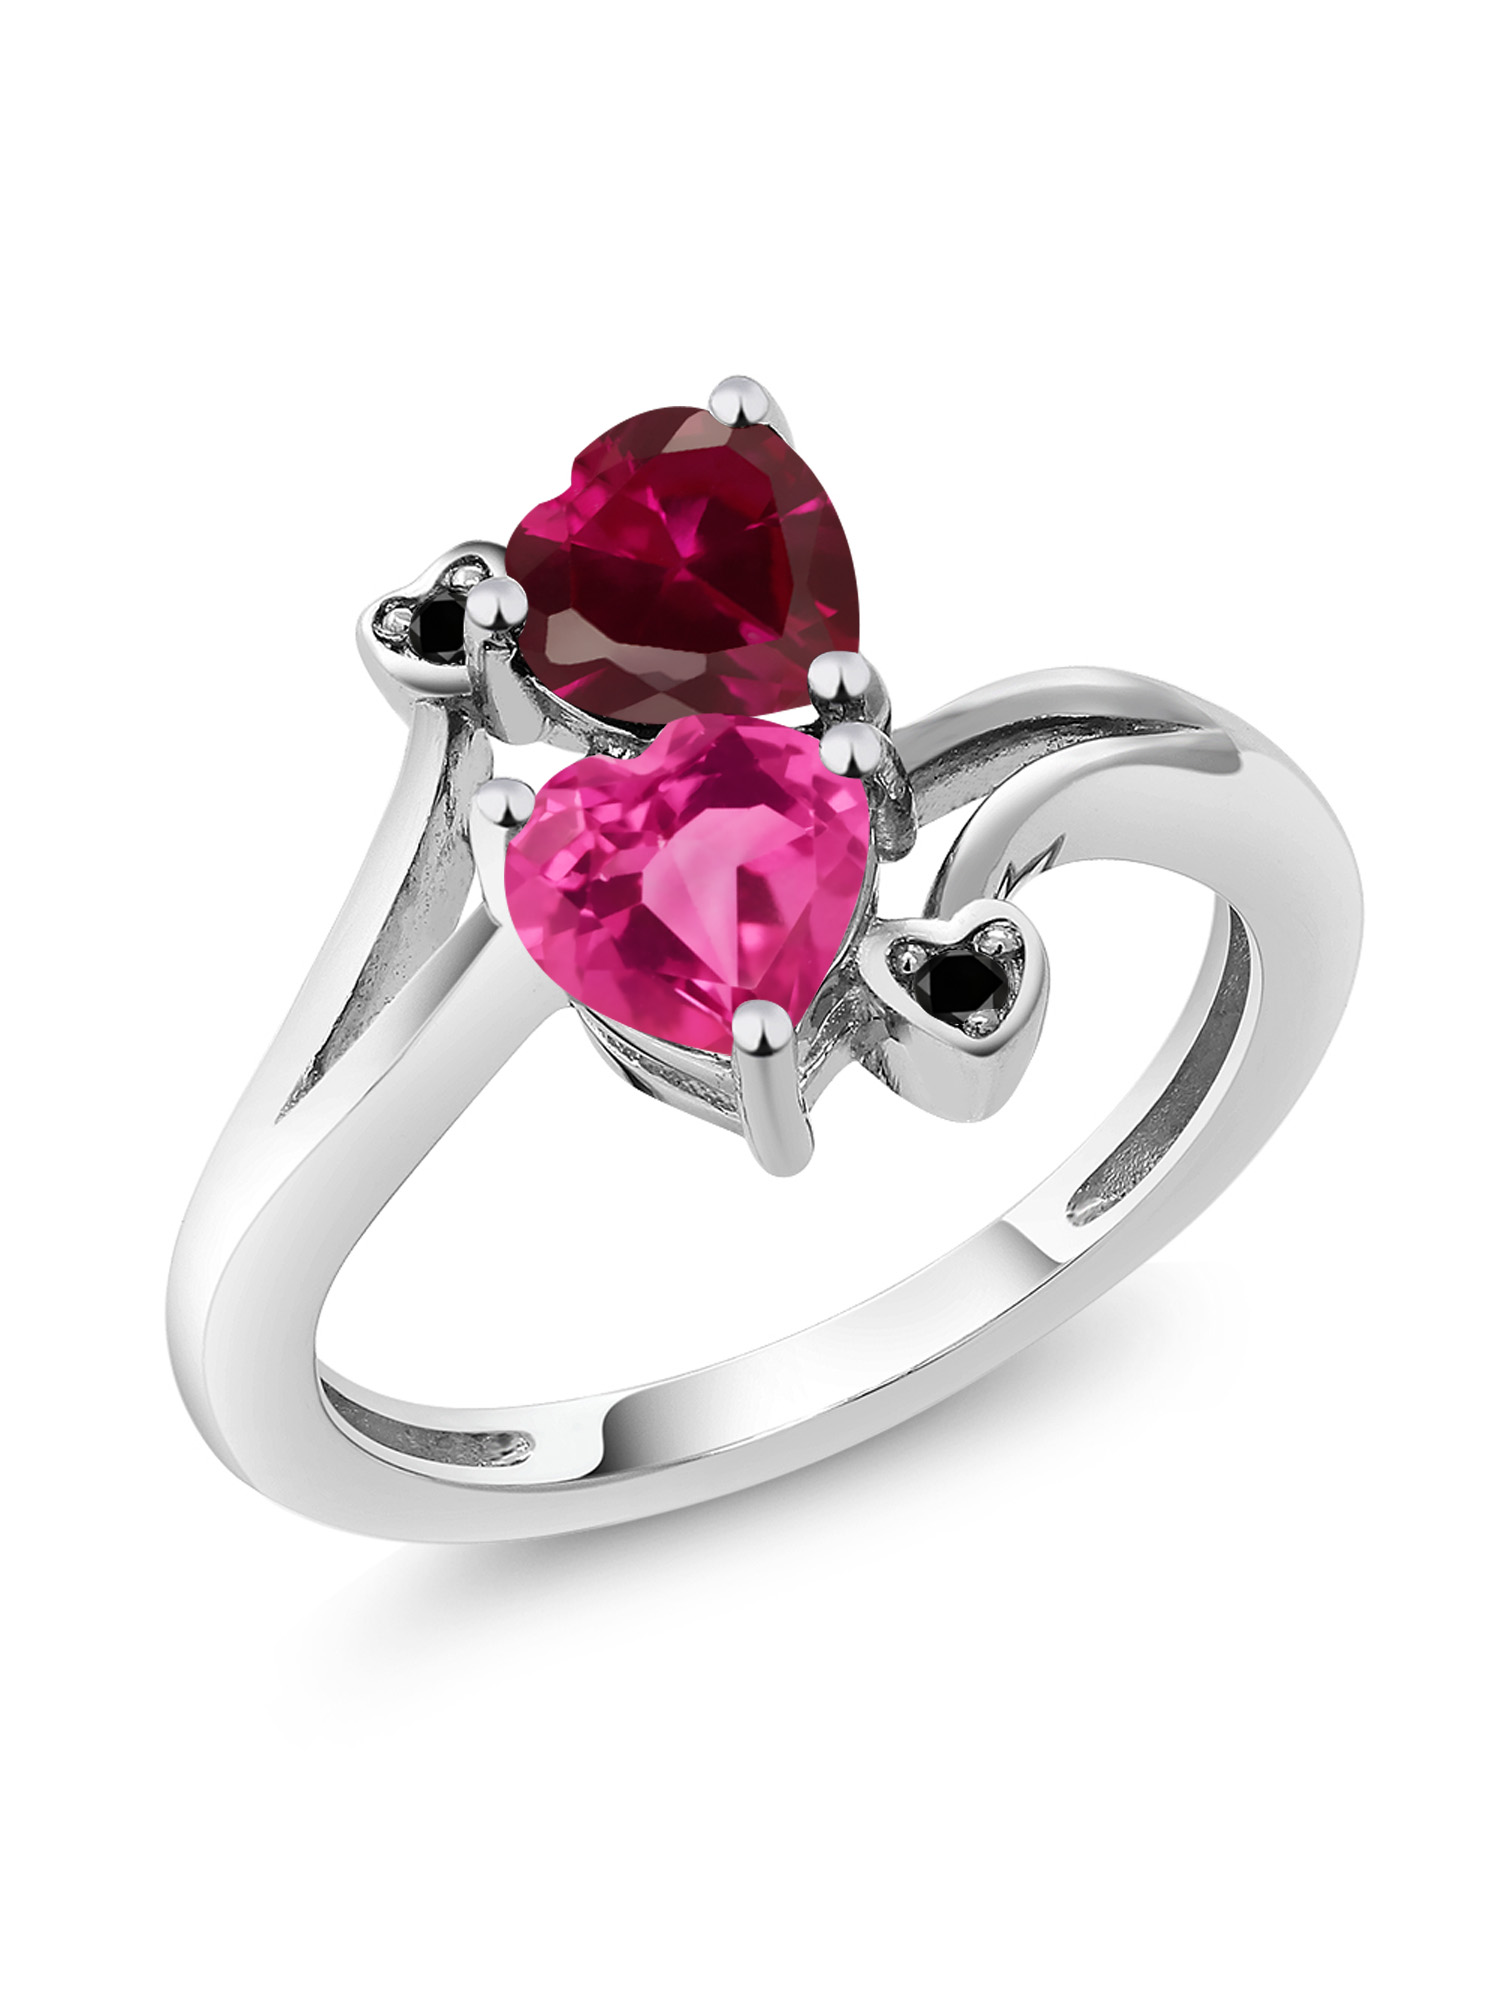 1.80 Ct Heart Shape Pink Created Sapphire Red Created Ruby 10K White Gold Ring by